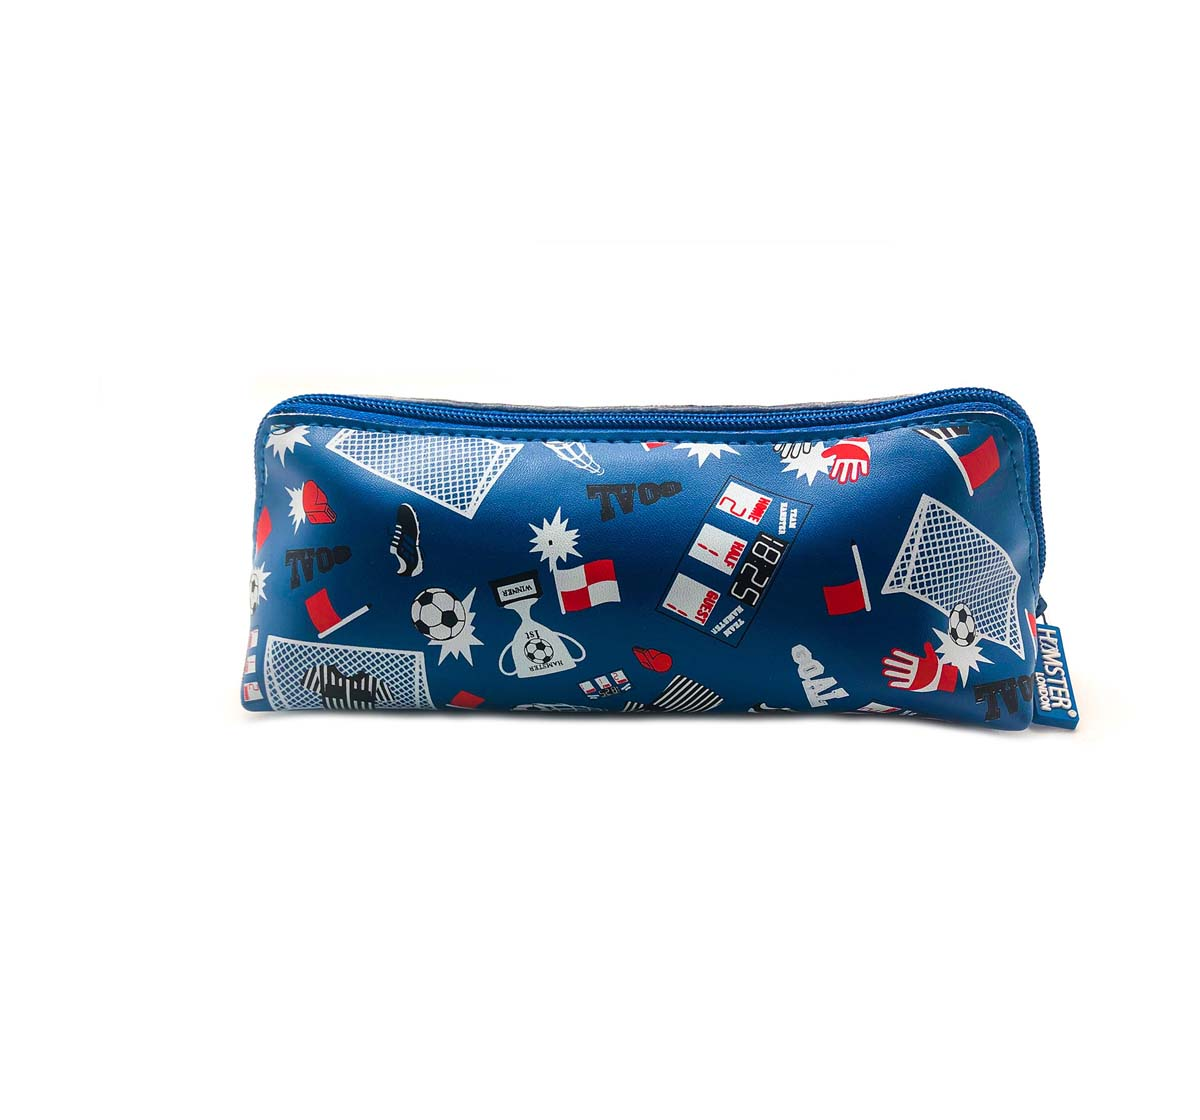 Hamster London | Hamster London Triangle Pouch Football Bags for Boys Age 3Y+ (Blue)